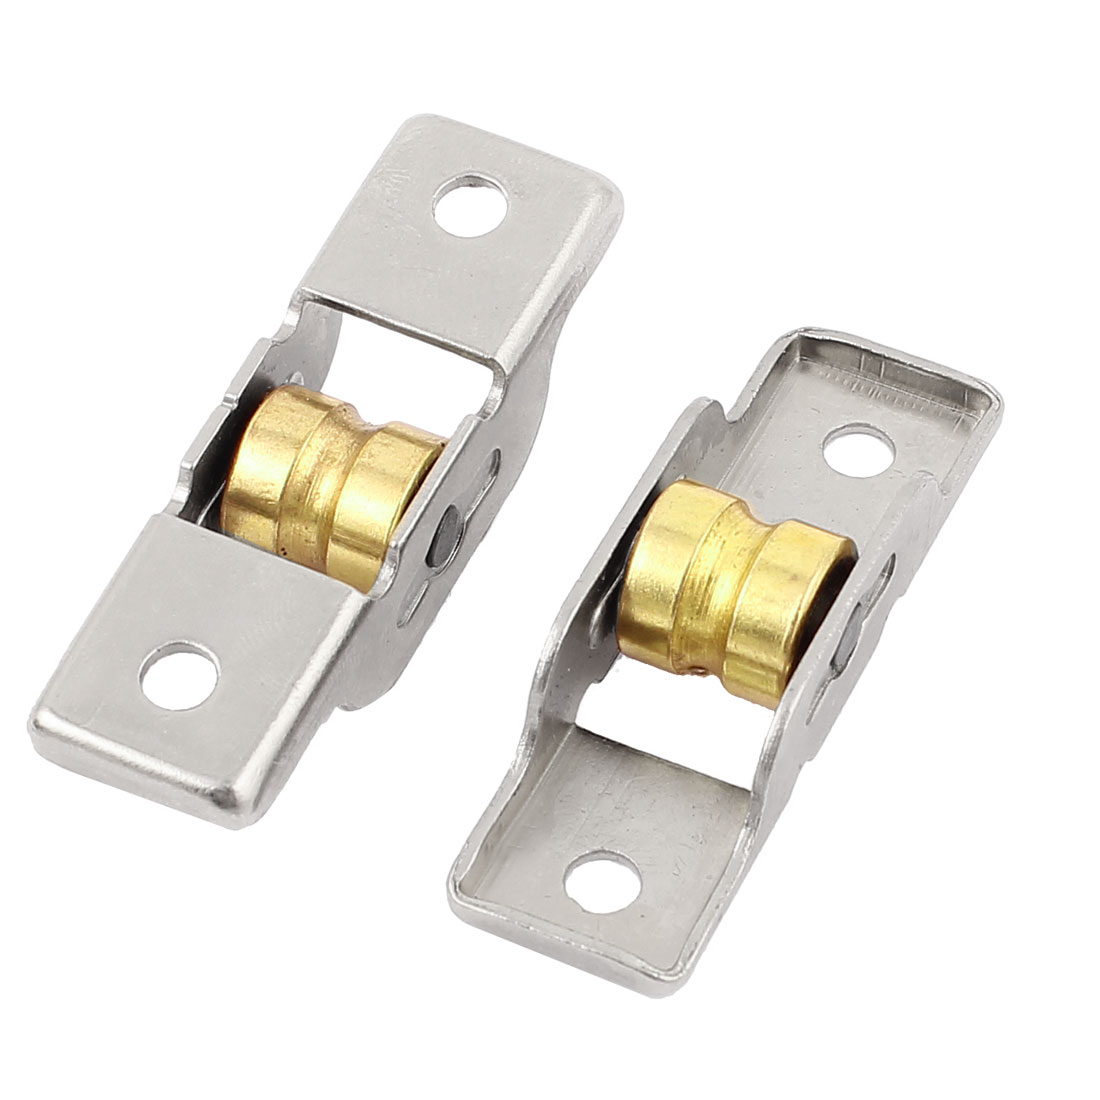 2Pcs 3mm Groove Width 11mm Diameter Rolling Wheel Sliding Furniture Sash Doors Single Roller Axle Window Pulley